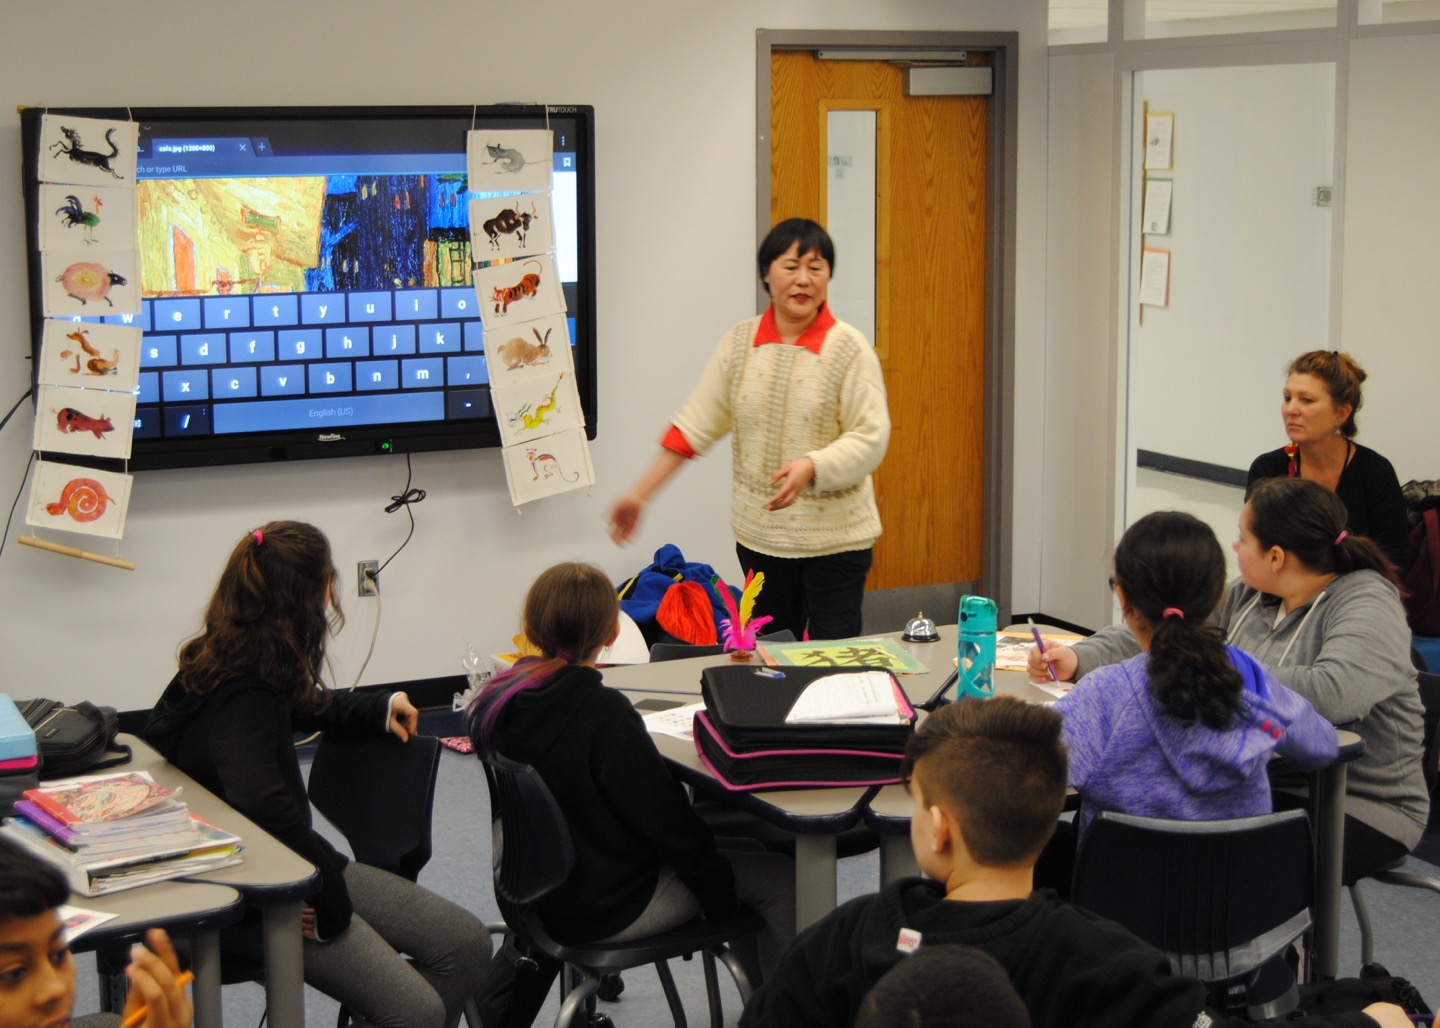 PVMS Mandarin Chinese Distance Learning teacher, Ping Moroney, makes a visit to PVMS to hold class in person and celebrate Chinese New Year. Click photo for more info